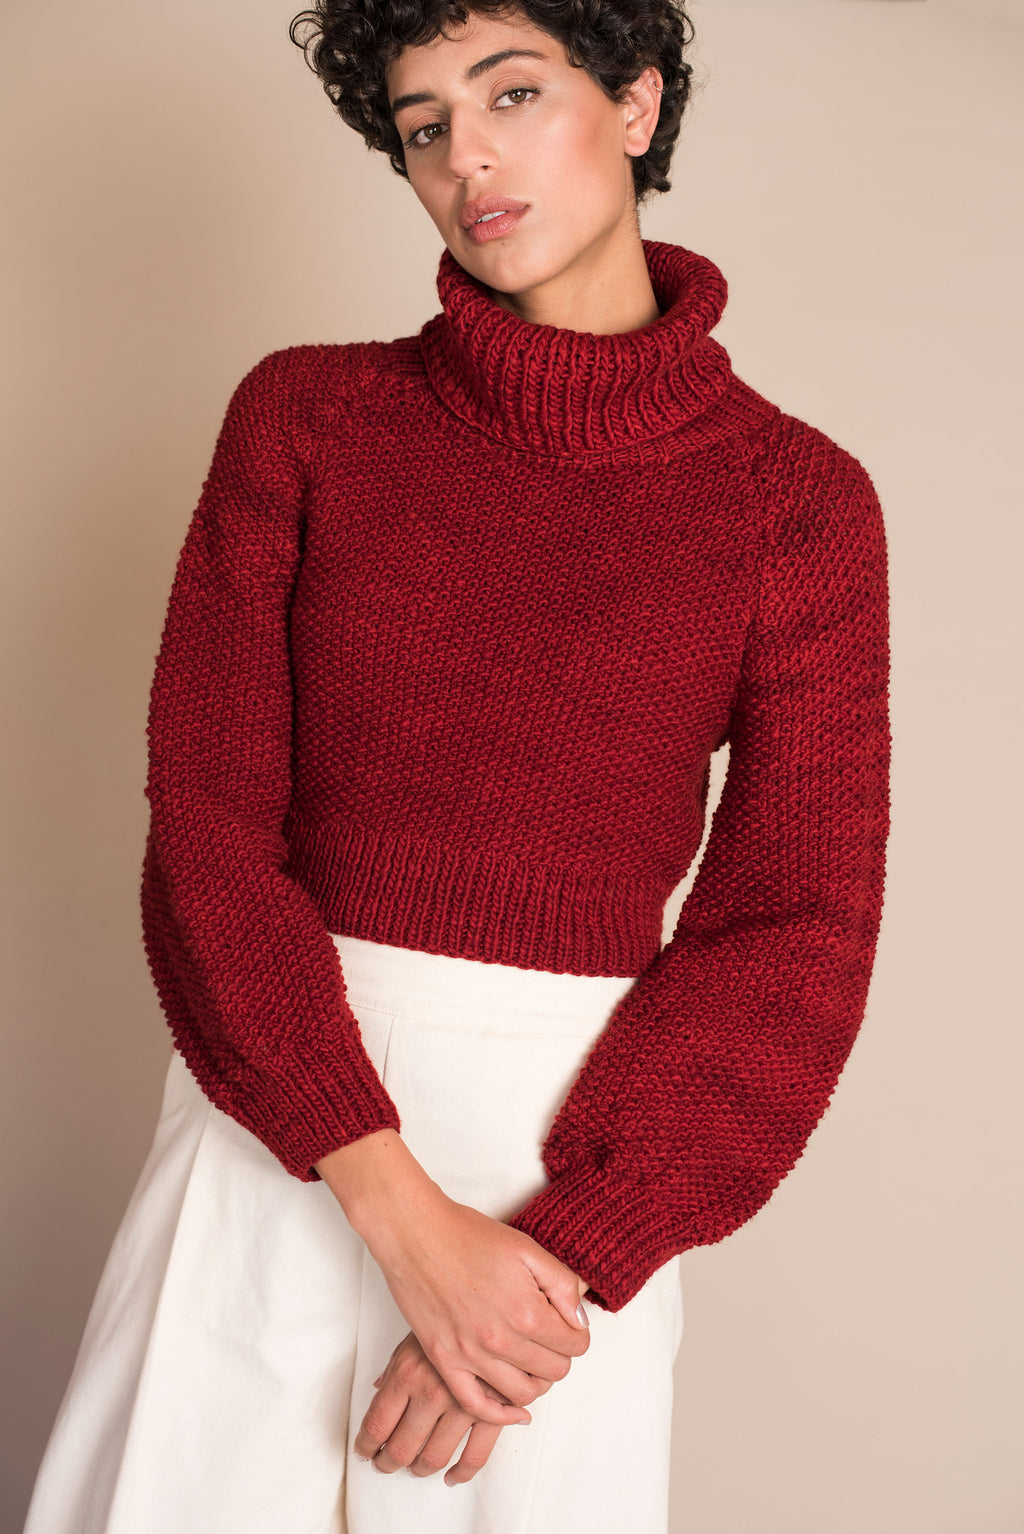 MARTE Crop Sweater in Red